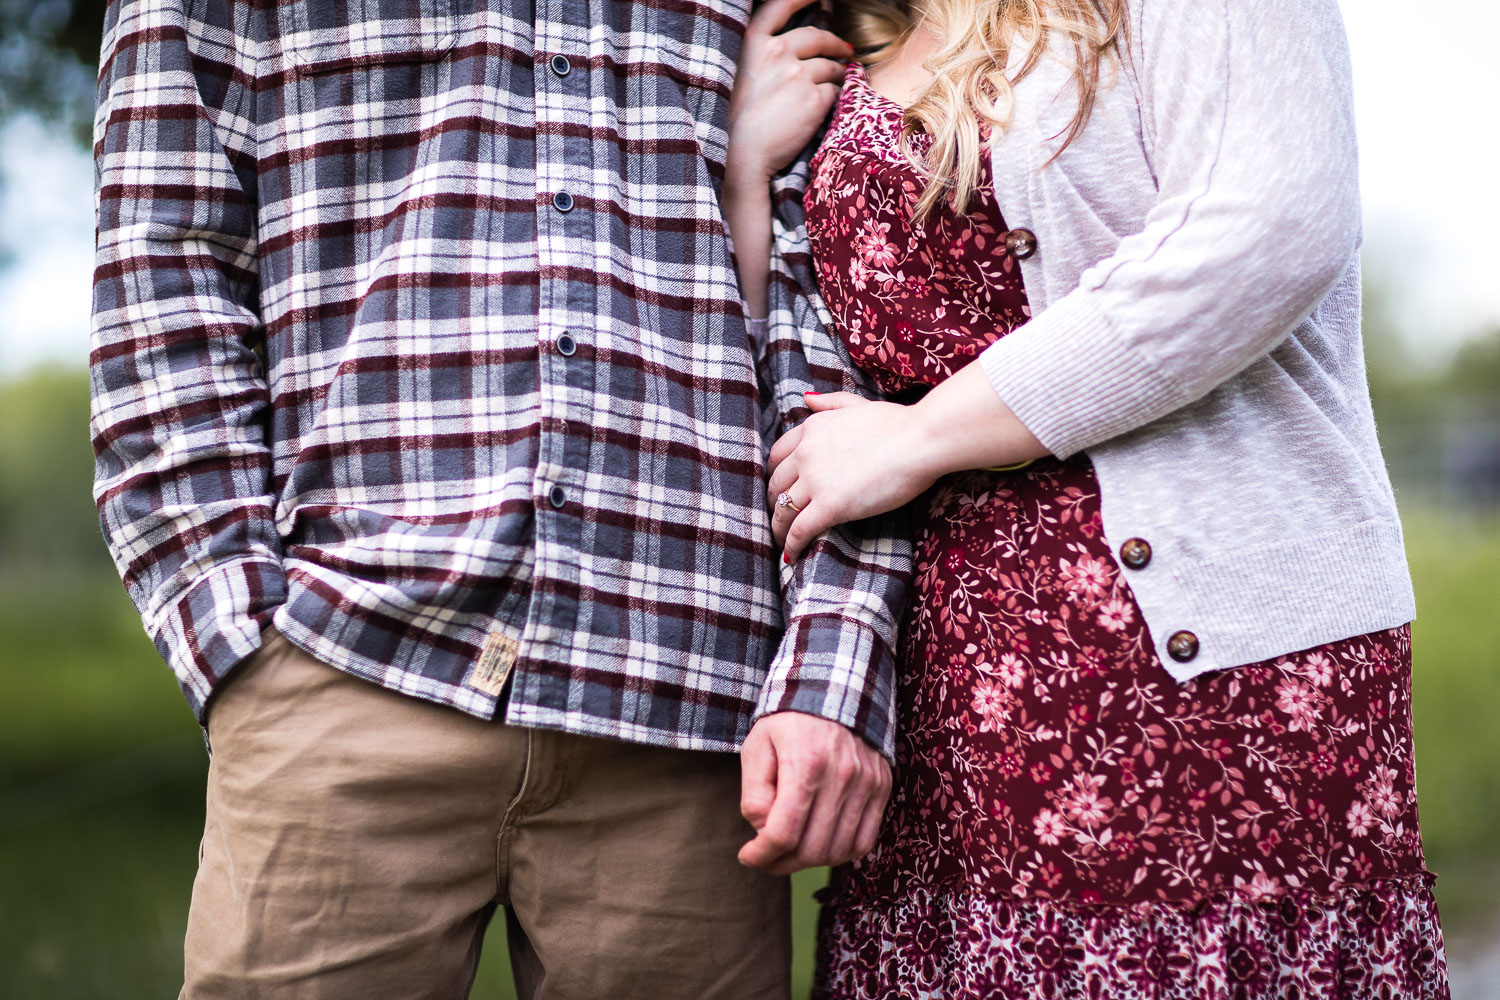 backyard-country-style-engagement-harth-photography-57.jpg